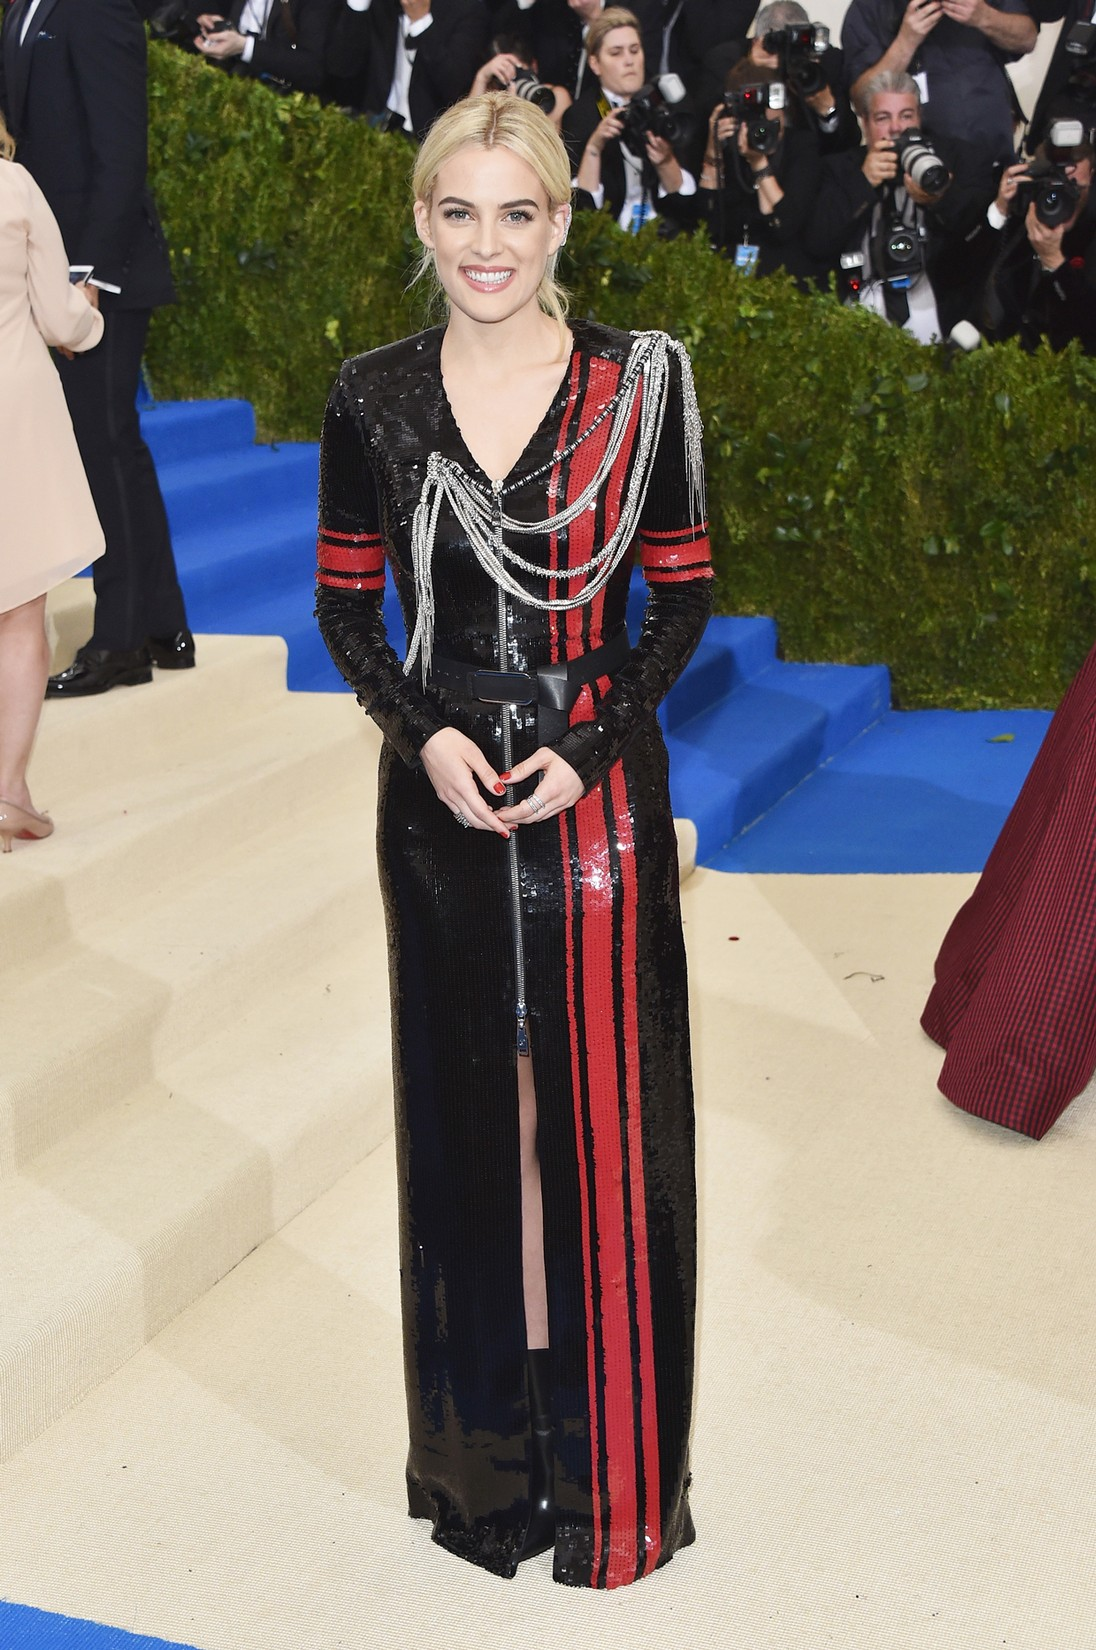 """Riley Keough attends the """"Rei Kawakubo/Comme des Garcons: Art Of The In-Between"""" Costume Institute Gala at Metropolitan Museum of Art on May 1, 2017 in New York City."""